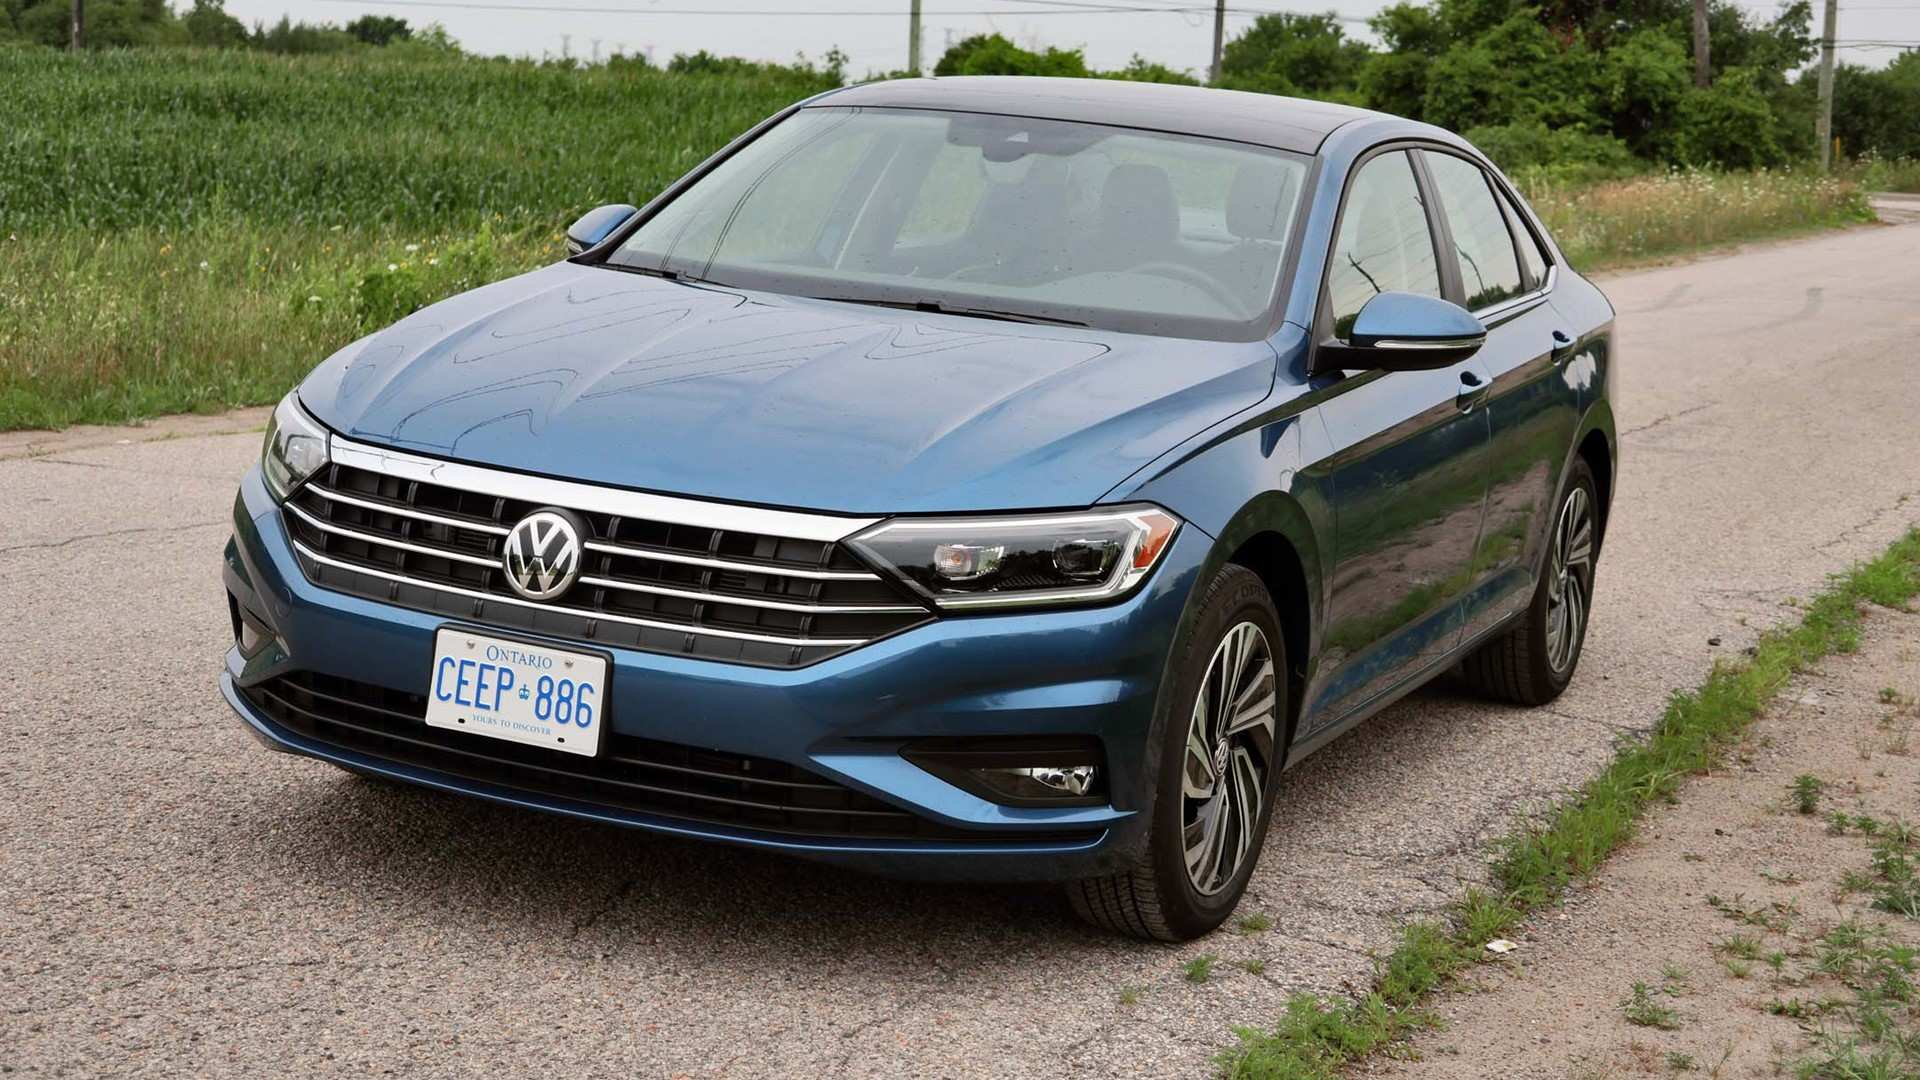 44 Gallery of Volkswagen Hybrid 2019 Performance And New Engine Price and Review with Volkswagen Hybrid 2019 Performance And New Engine